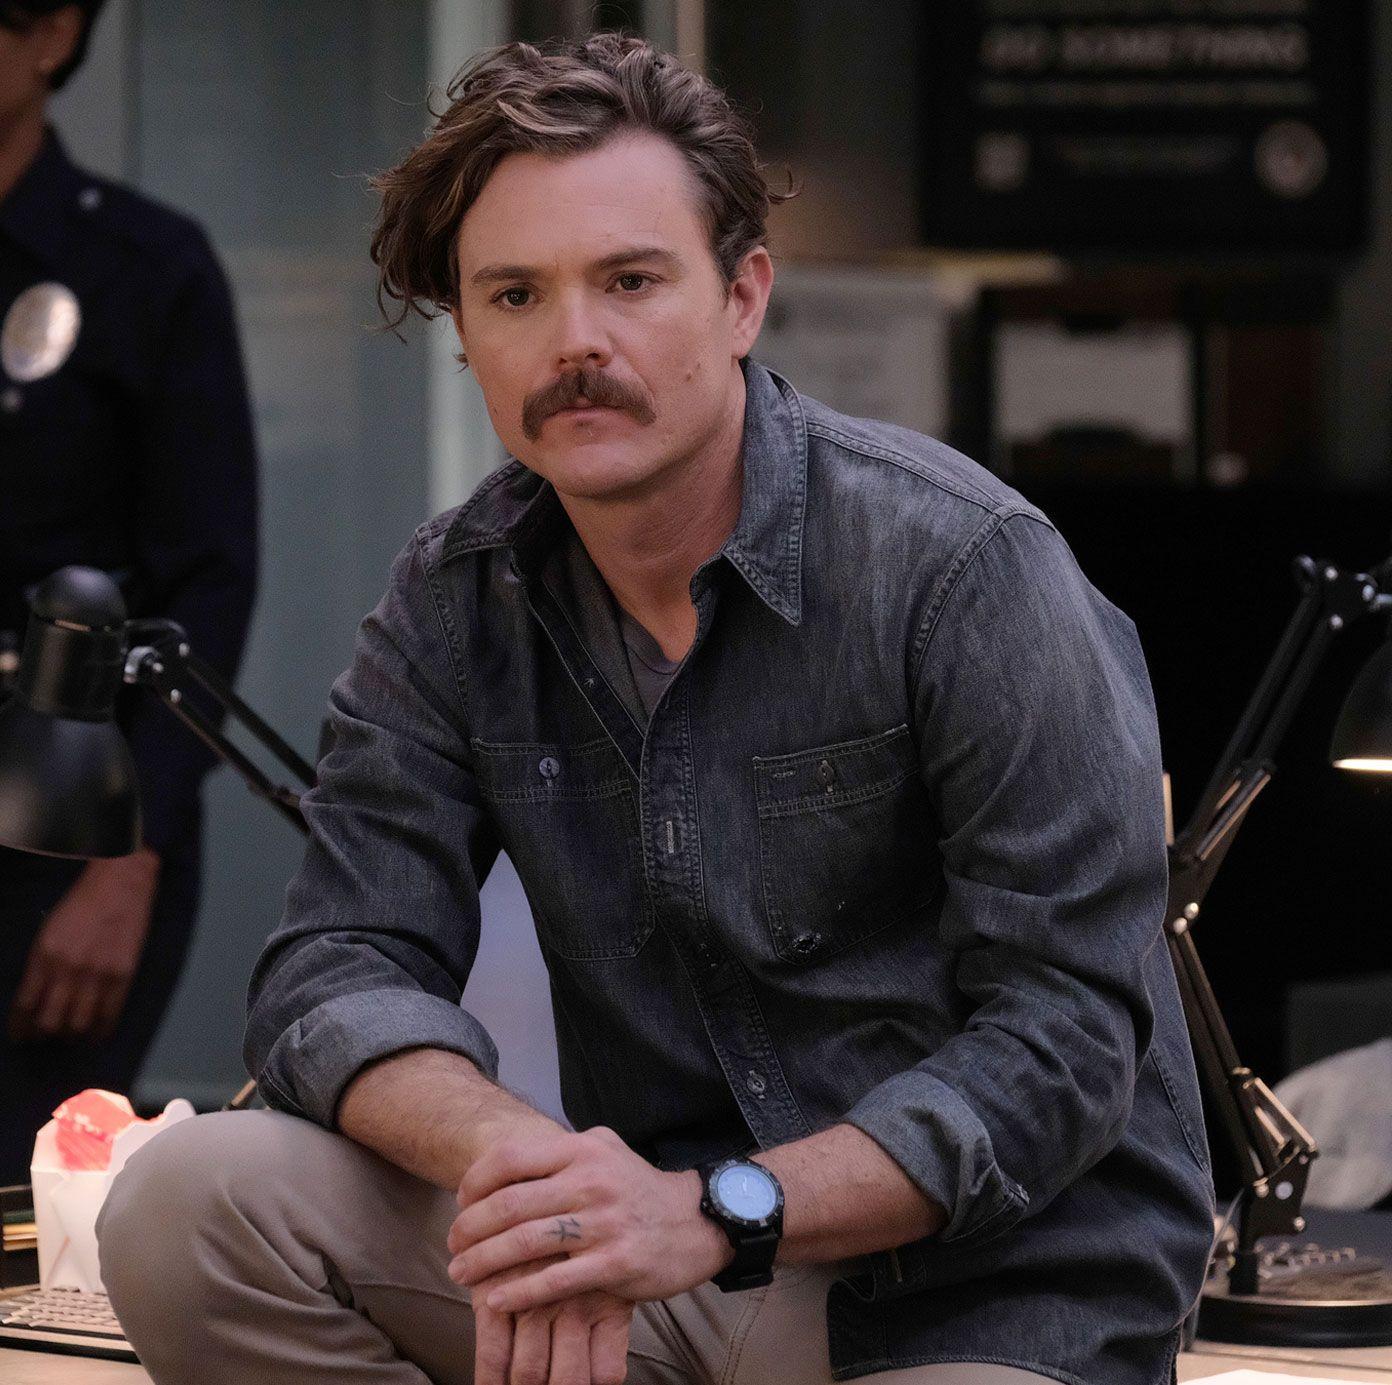 Ex-Lethal Weapon star Clayne Crawford is set for TV comeback after being axed from Fox show